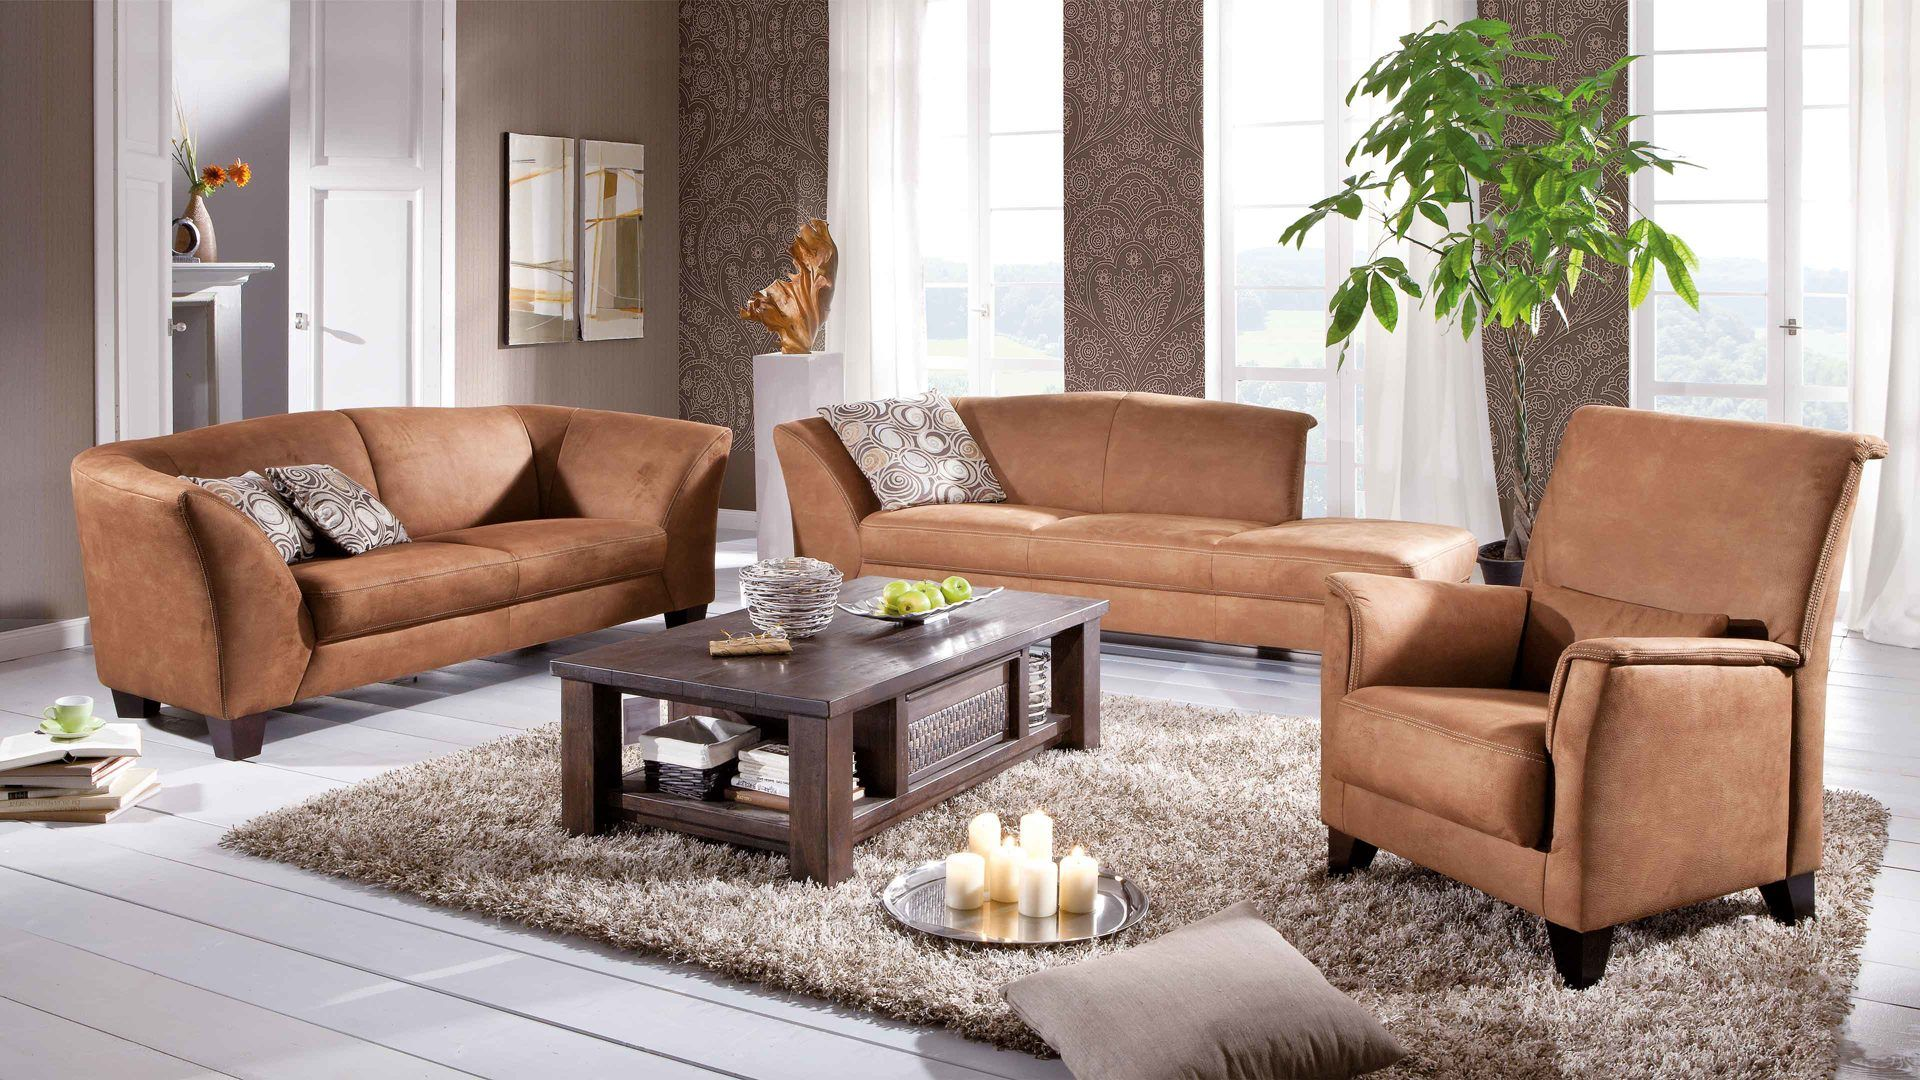 sessel recamiere und ein 2 5 sitzer sofa bilden diese schicke woods trends polsterkombination. Black Bedroom Furniture Sets. Home Design Ideas